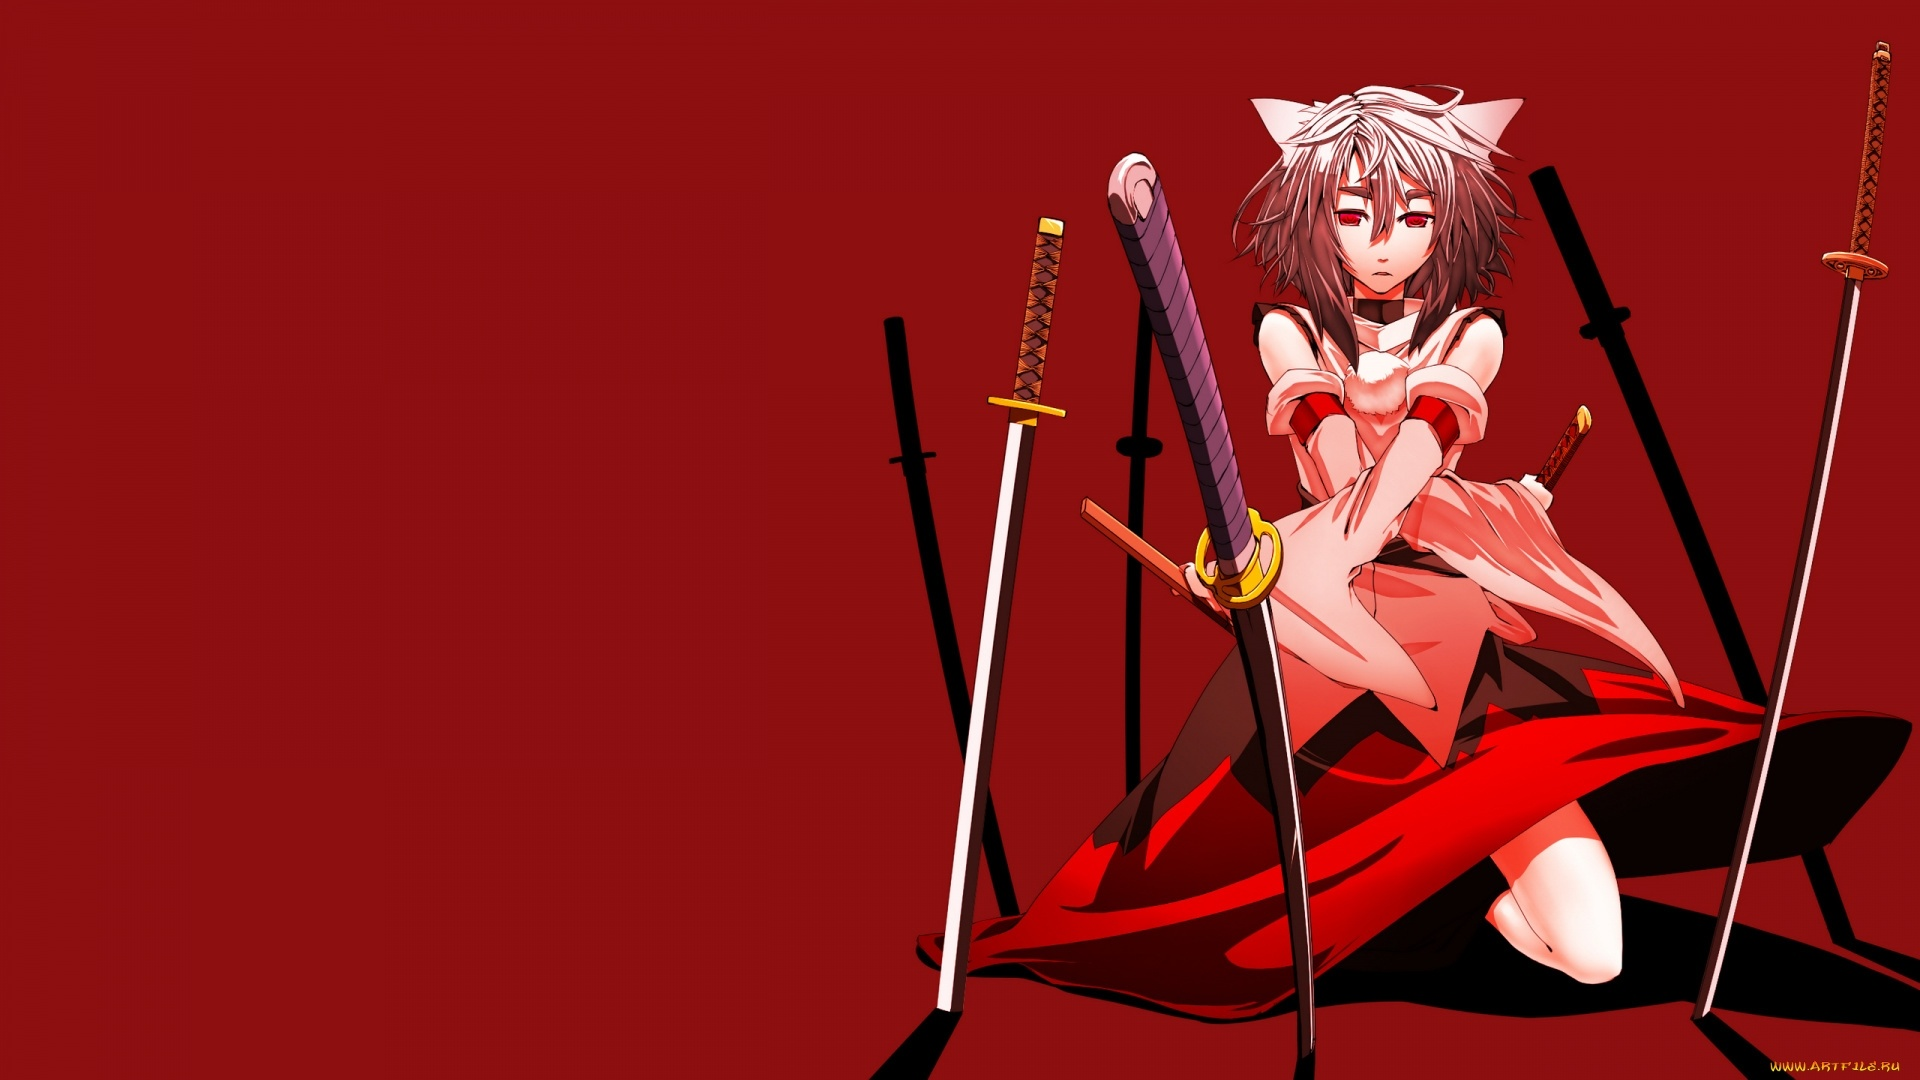 Red Anime Girl Background